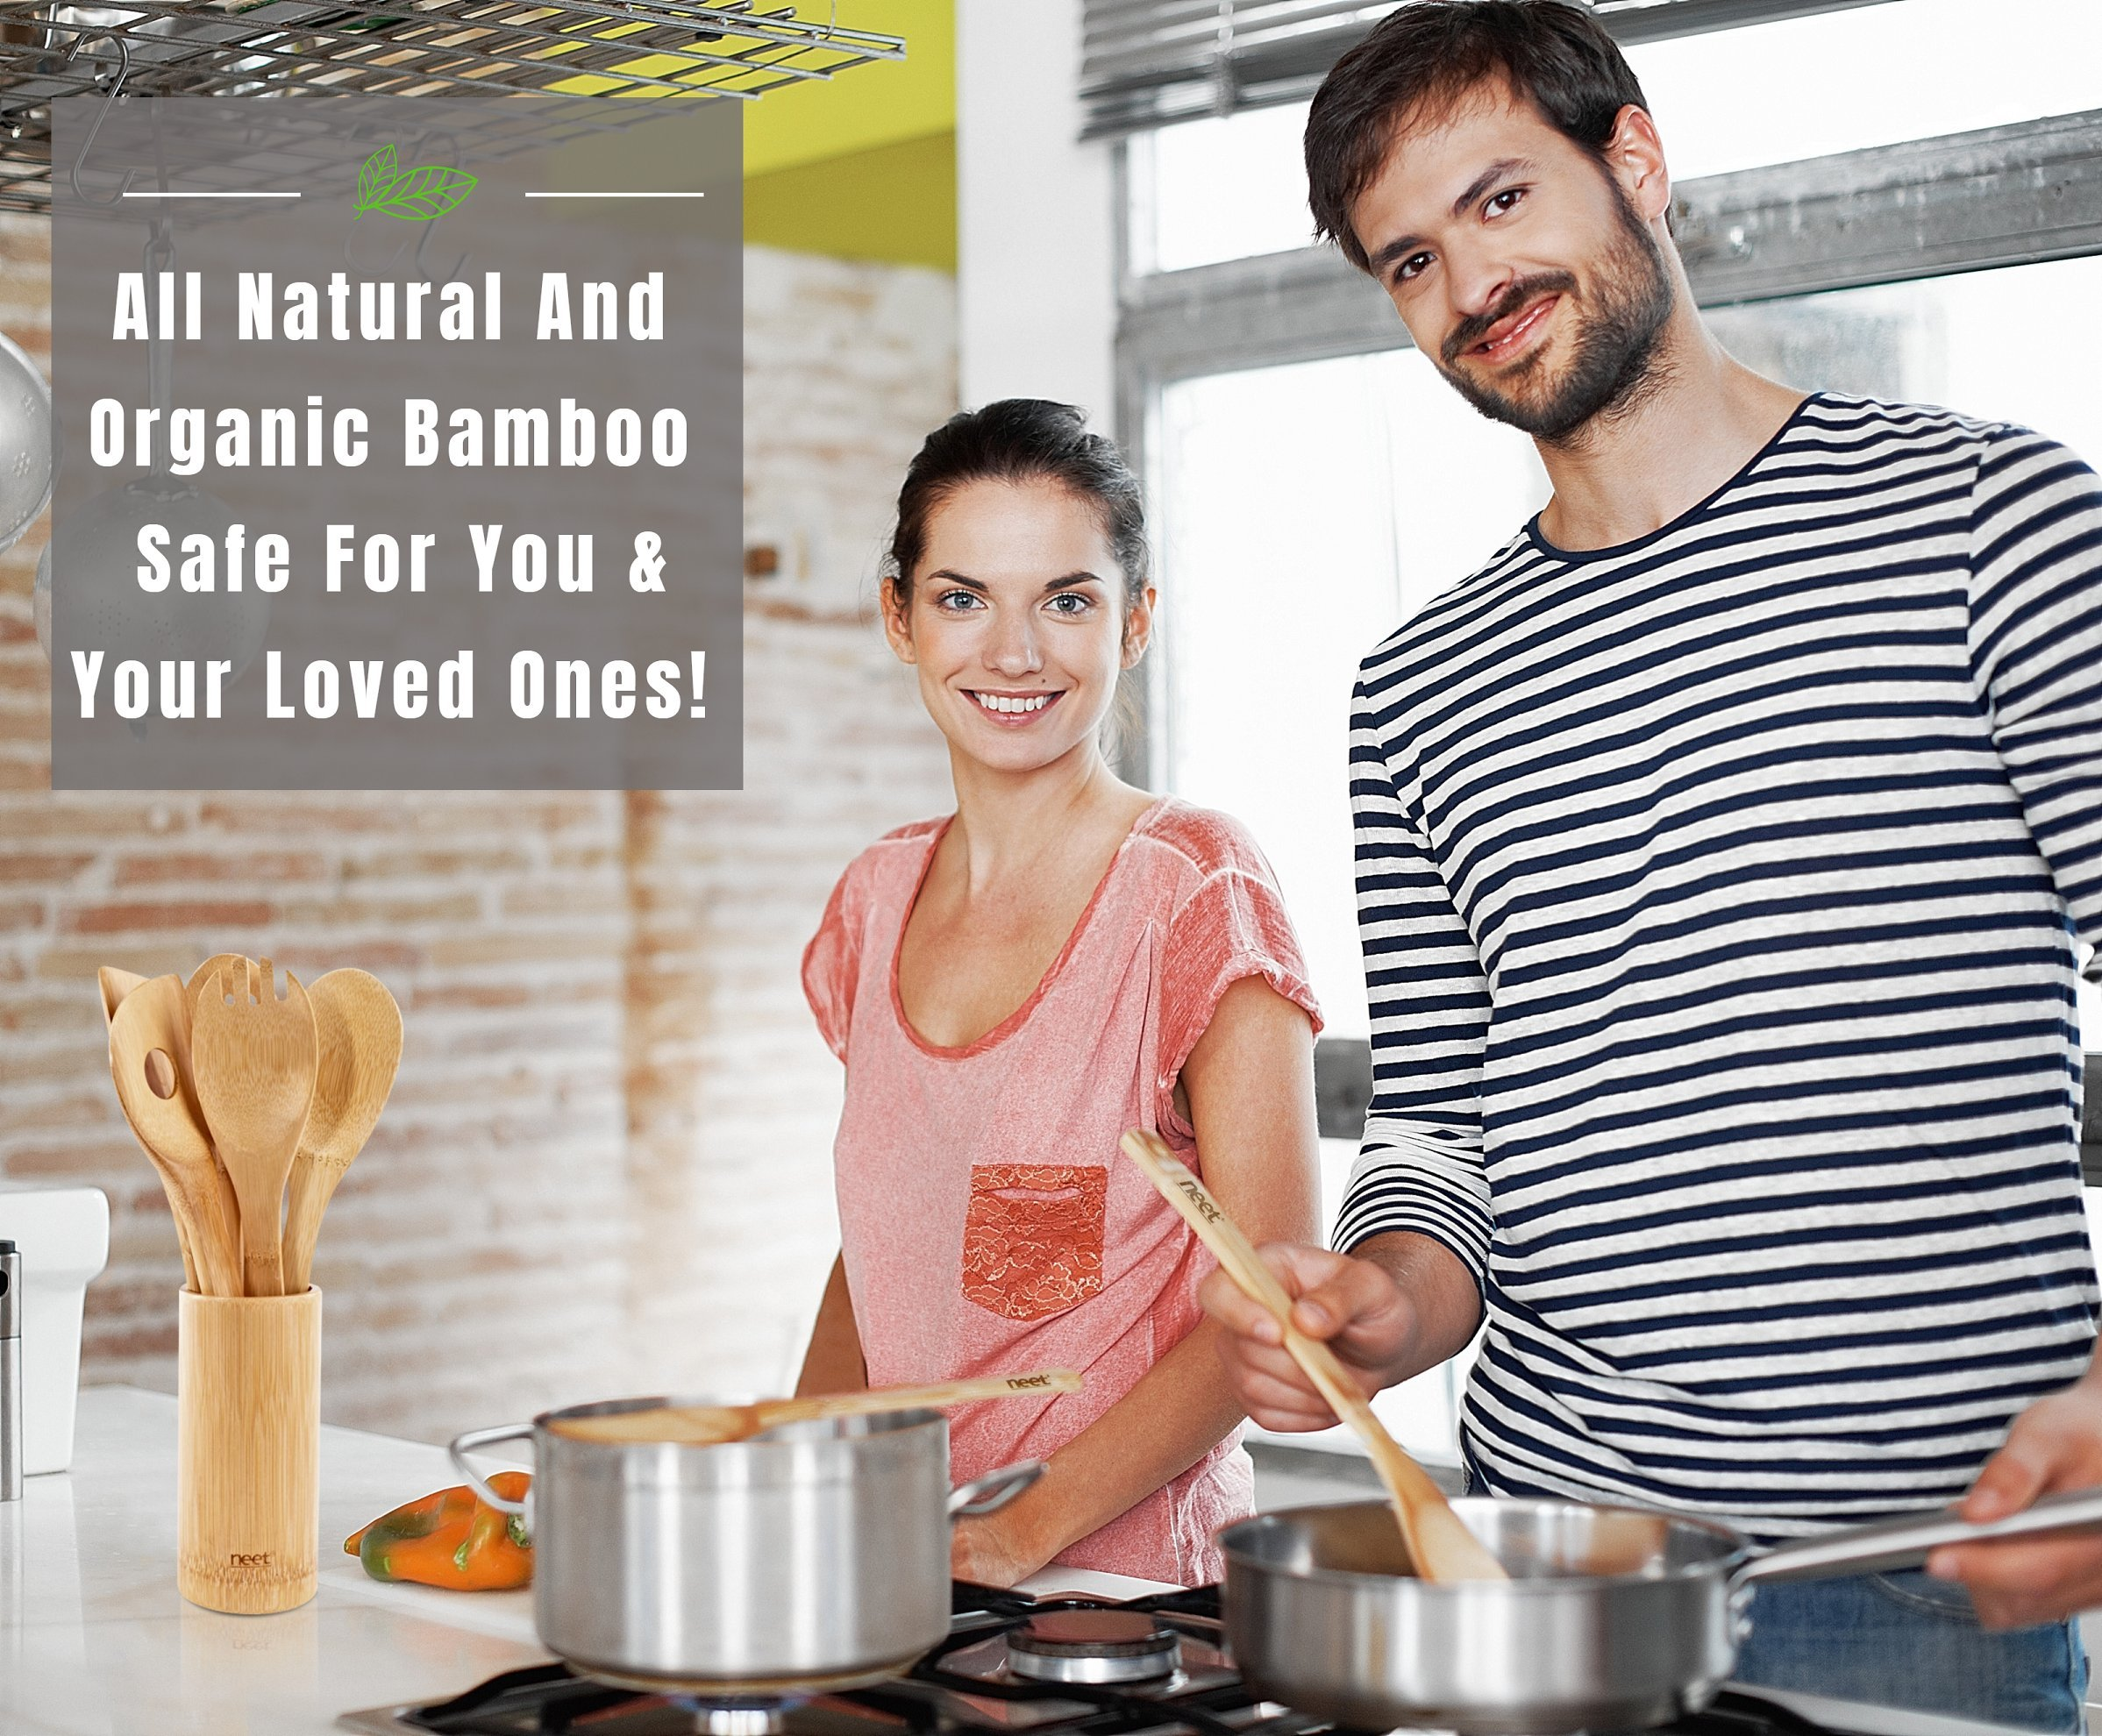 Organic Bamboo Cooking & Serving Utensil Set By Neet - 6 Piece Set | Spoon & Spatula Mix | Utensil Holder Organizer | Non Stick Wooden Kitchen Gadgets | Great Gift For Chefs & Foodies by Neet (Image #2)